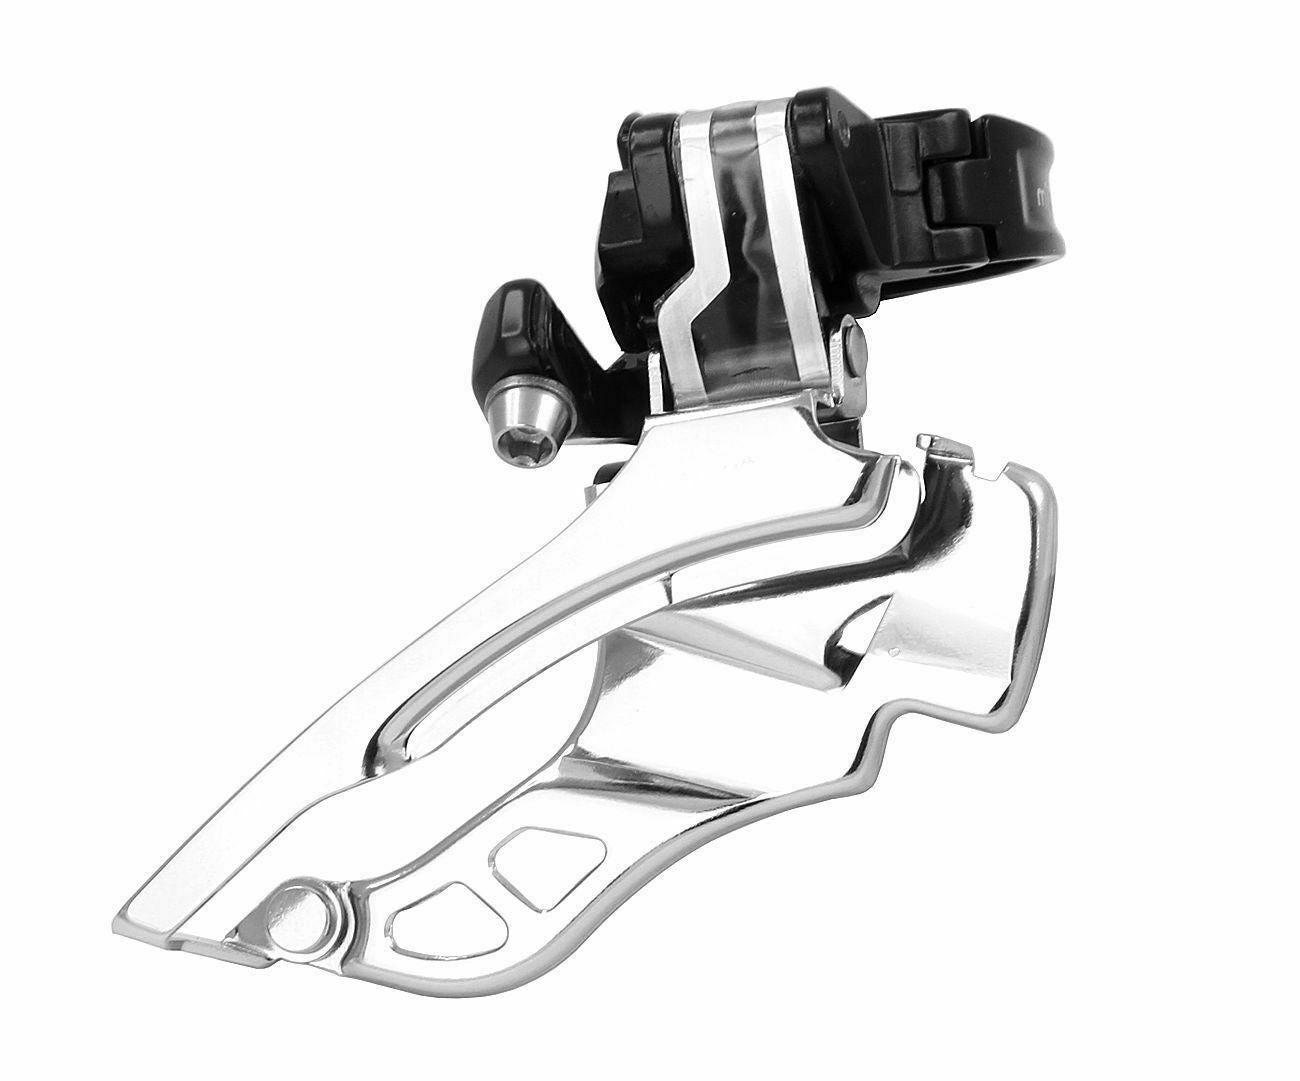 MICROSHIFT Mountain Bike Front Derailleur For Shimano 3x9 Speed FD-M64